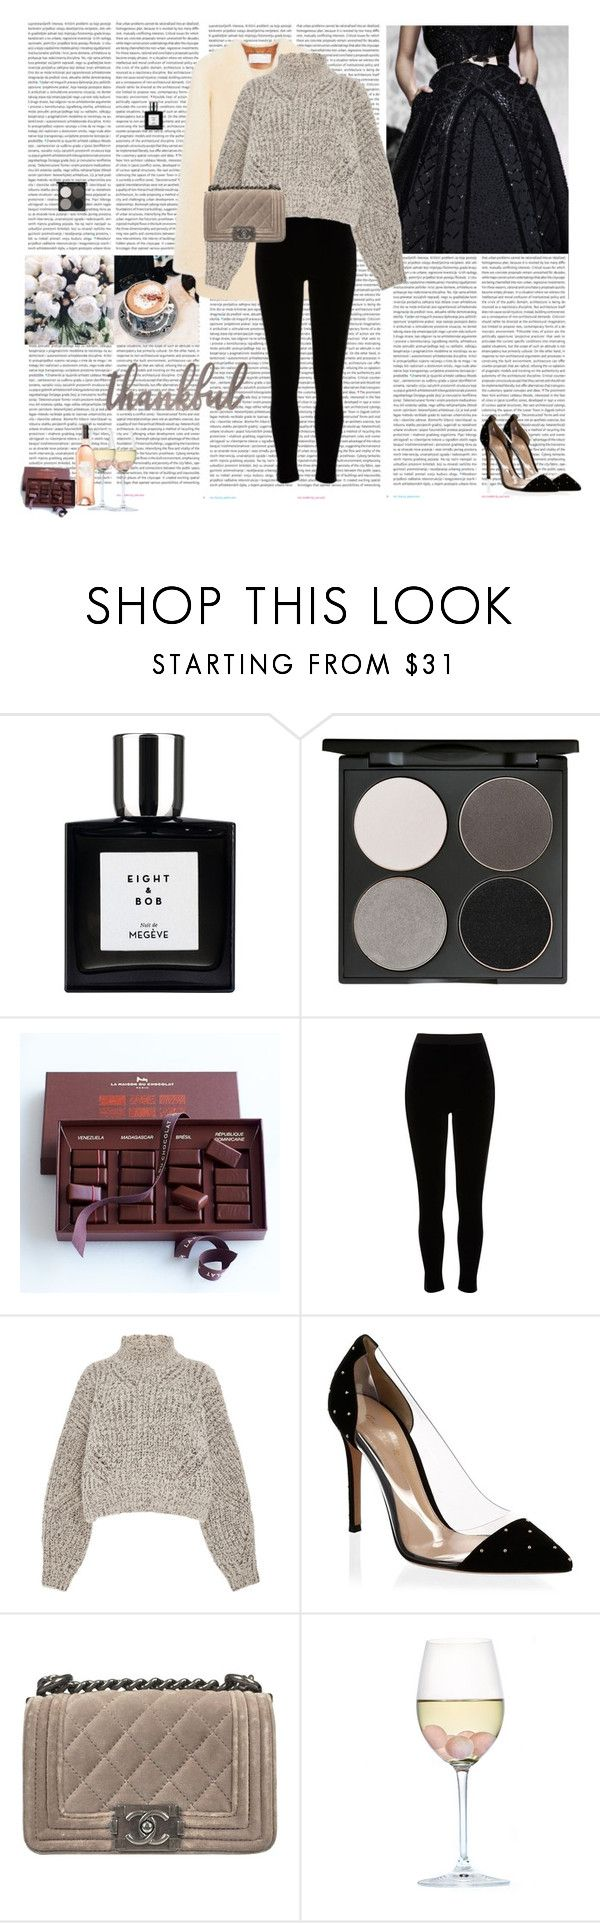 """""""Peace, Love, Joy to All"""" by rikka-alicia ❤ liked on Polyvore featuring Oris, Gorgeous Cosmetics, Prada, River Island, Isabel Marant, Gianvito Rossi, Chanel and RabLabs"""